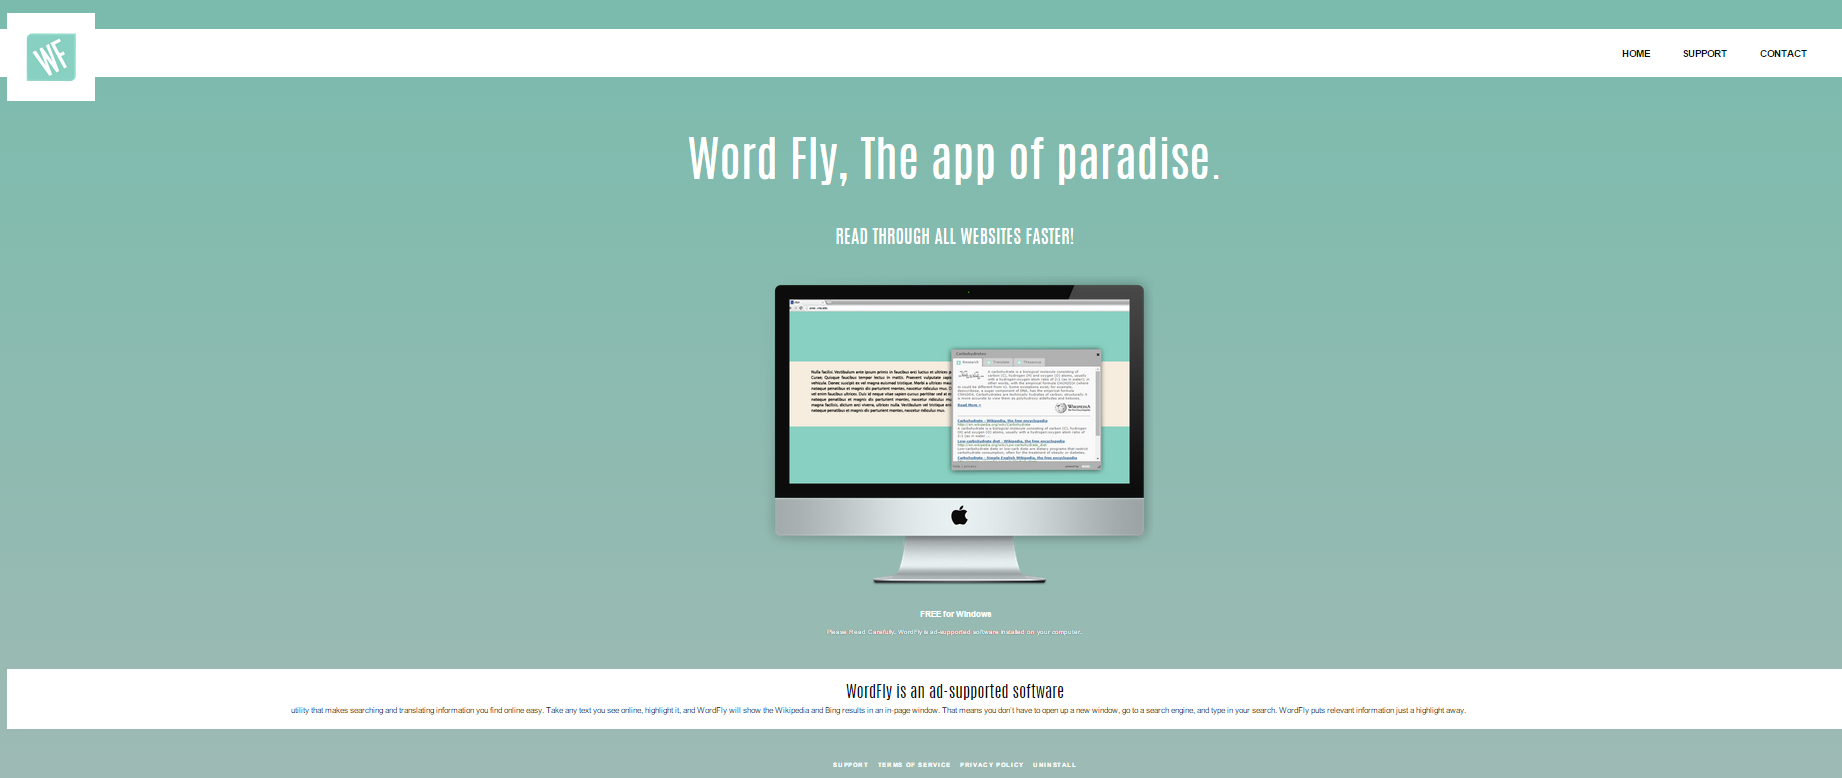 WordFly Ads